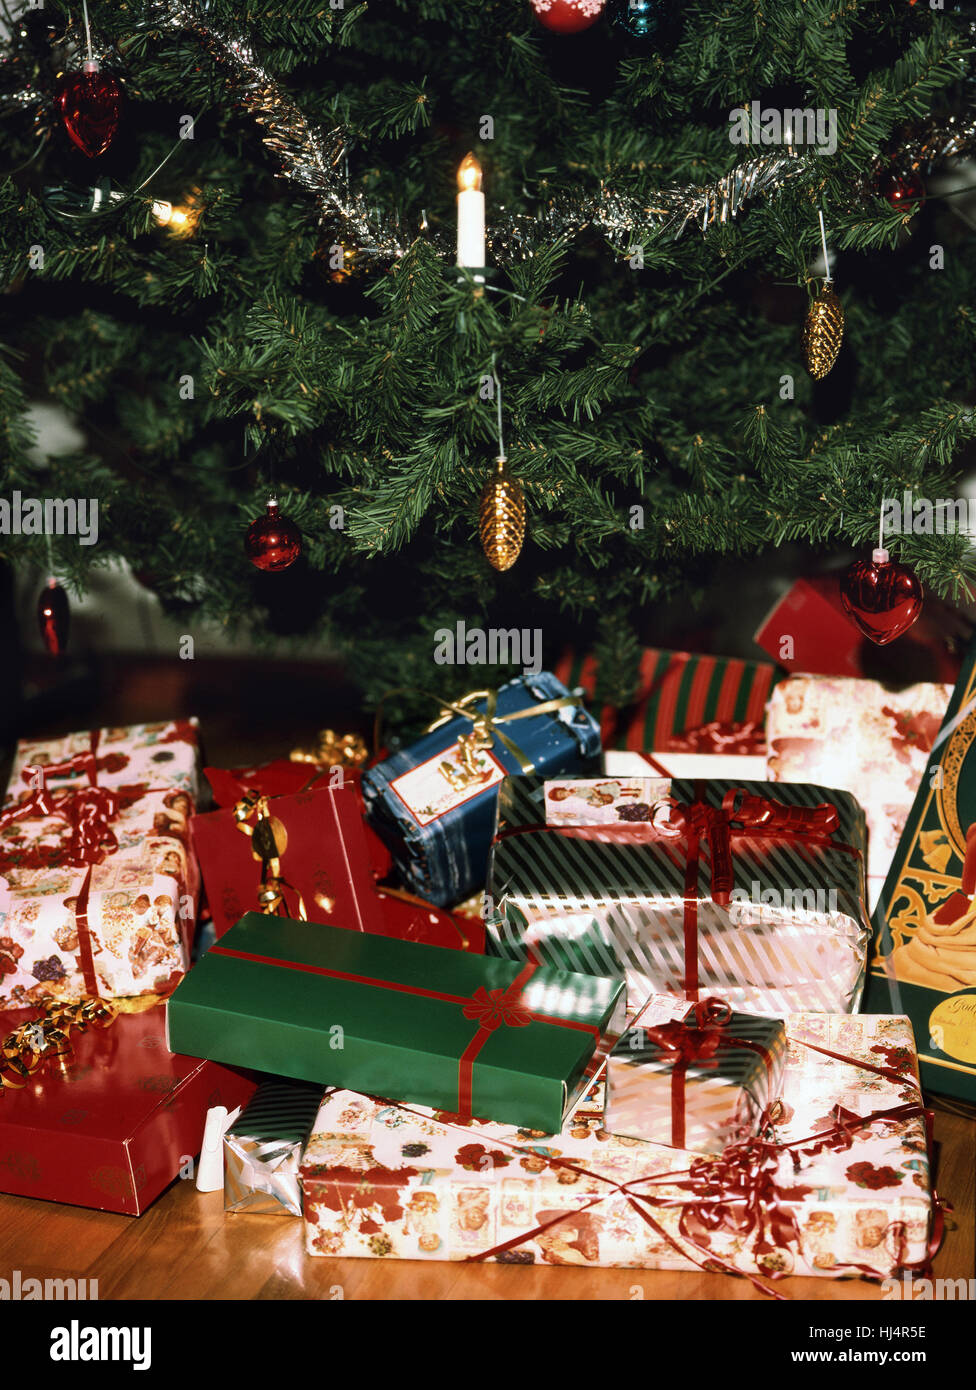 christmas packages under the christmas tree 2015 stock image - Christmas Packages